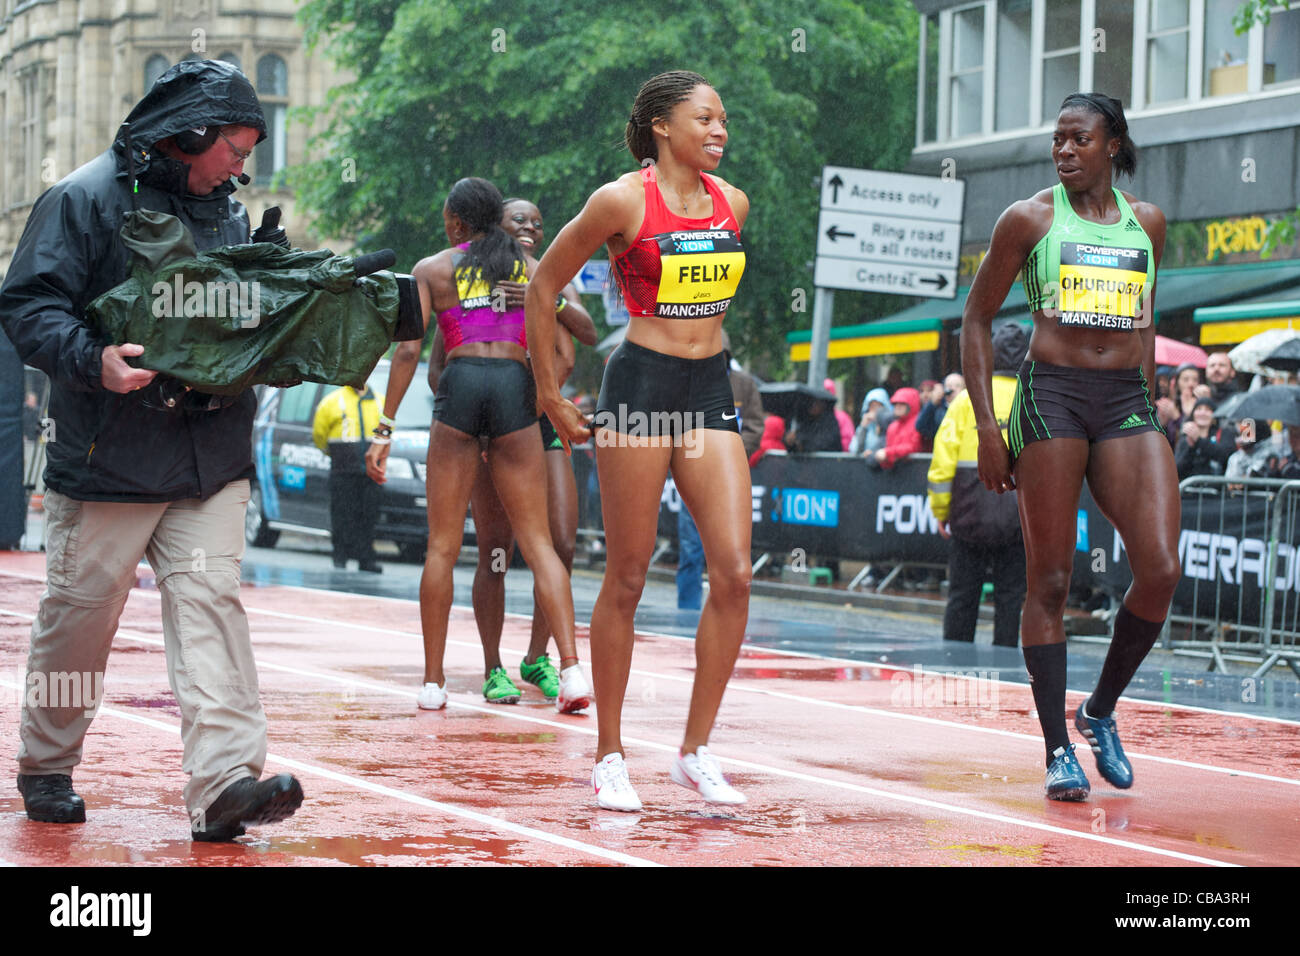 Allyson Felix and Christine Ohuruogu converse in the rain after running in the Great City Games 2011, Manchester - Stock Image